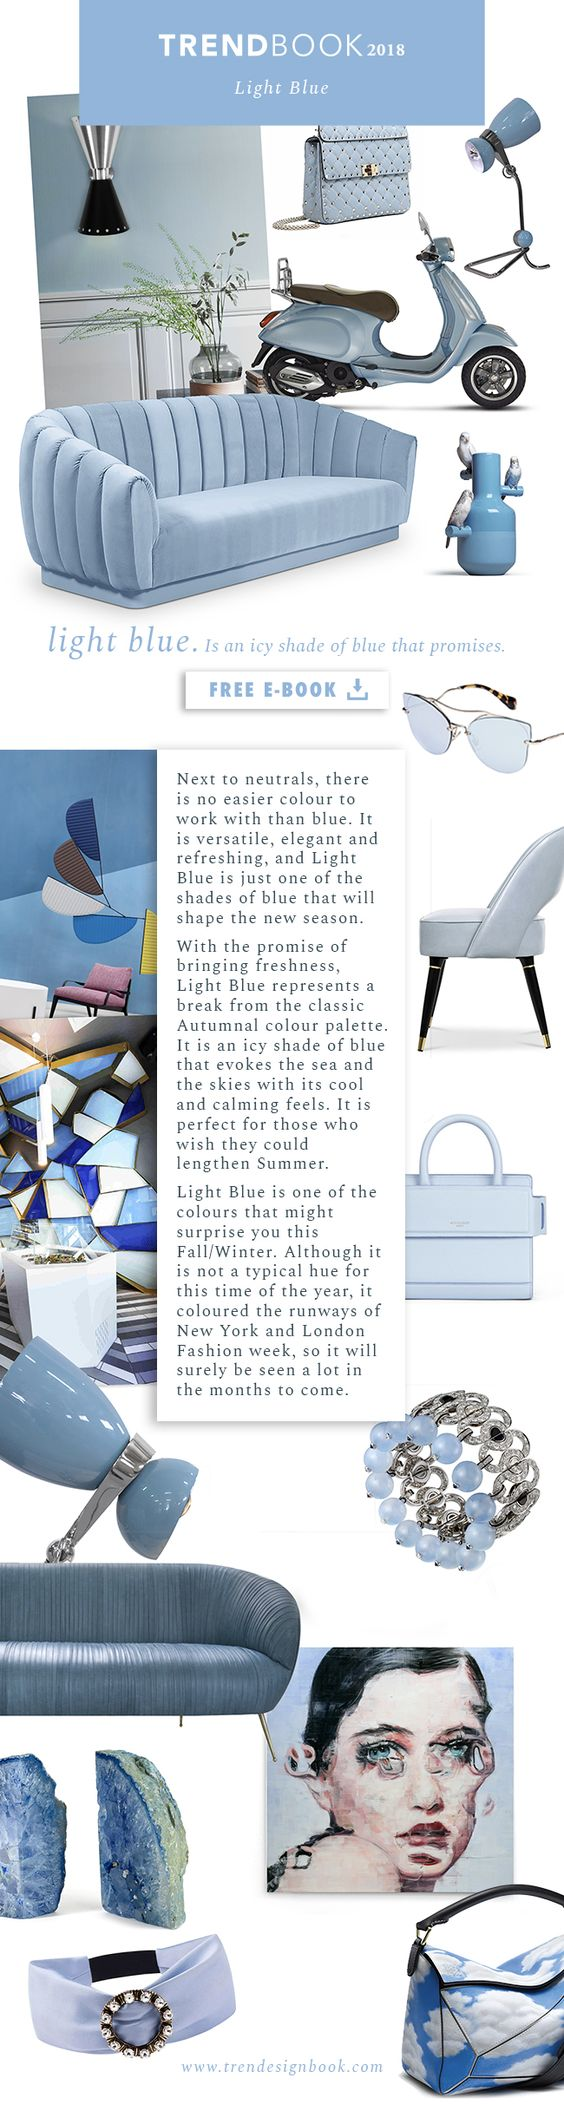 Color trends Fall/Winter 2017/18 Light Blue